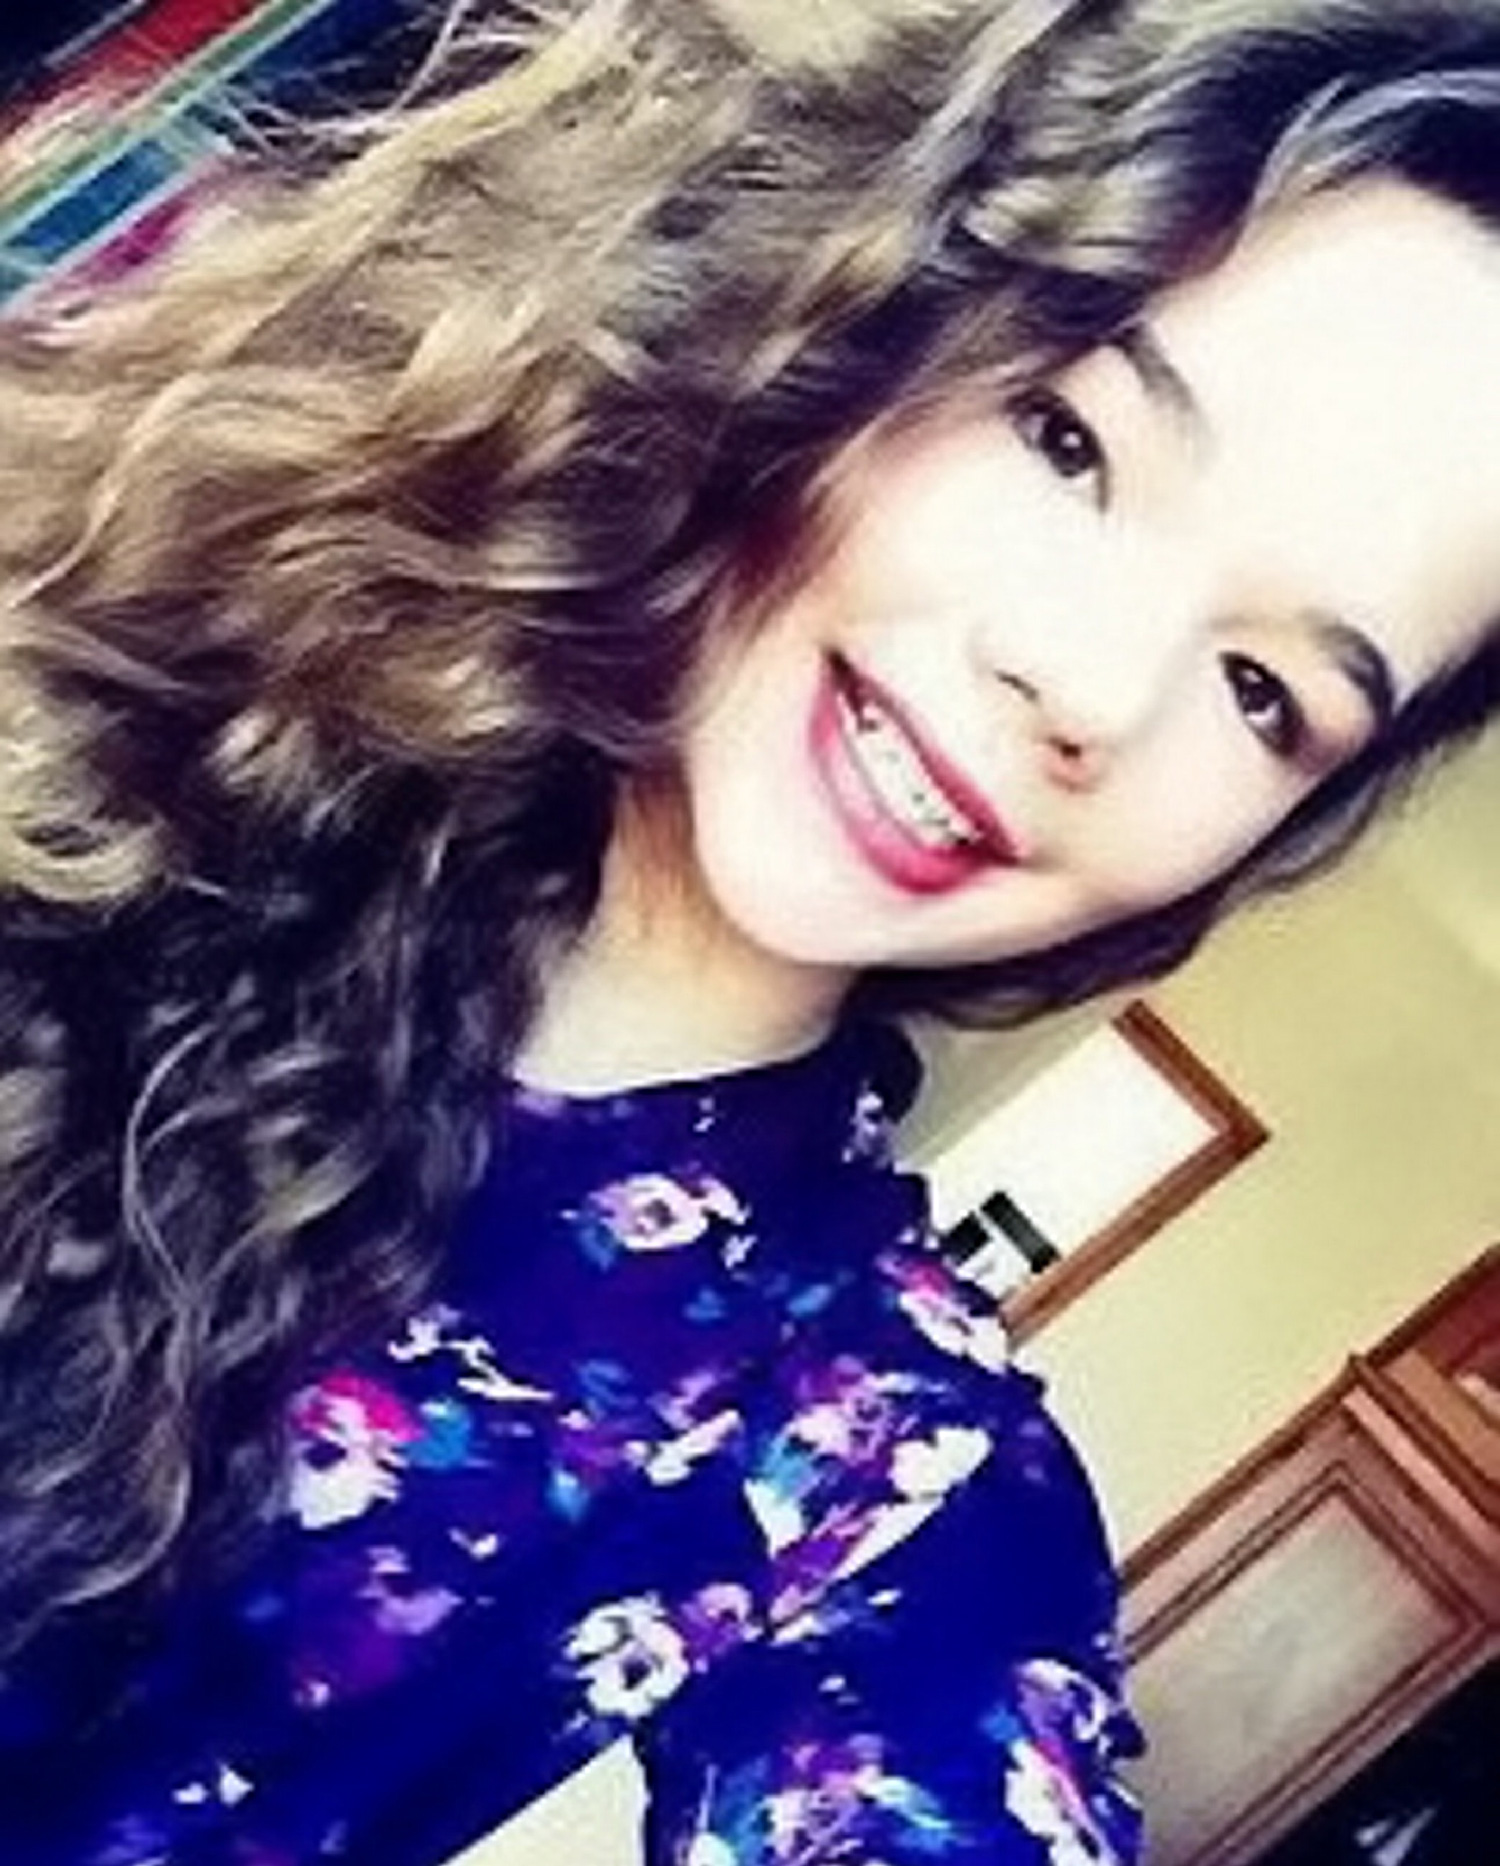 PARENTS LAUNCH CALL FOR EMILY'S LAW AFTER TEEN DROWNED UNDER SPEEDBOAT